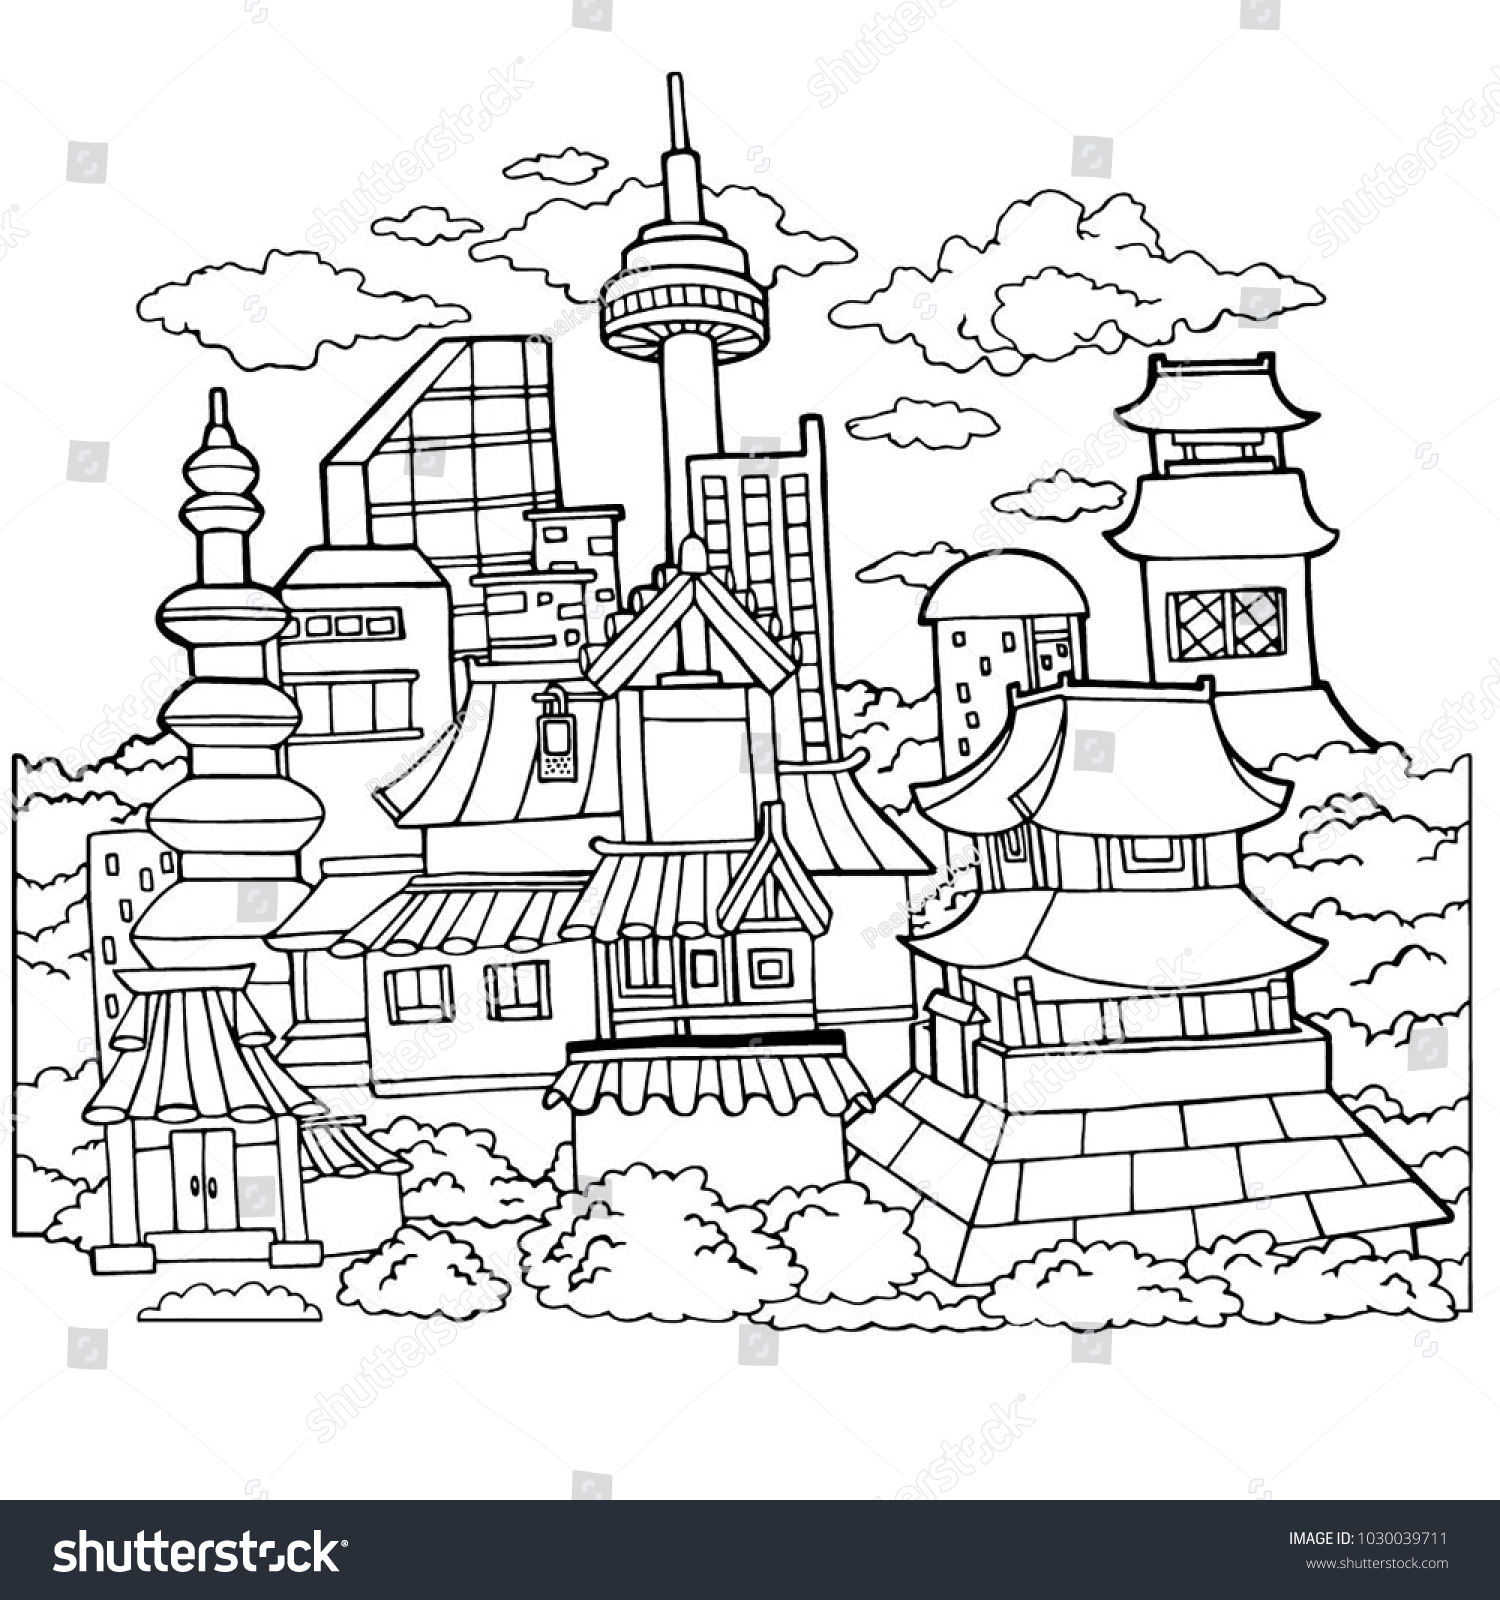 korean town detailed coloring page - Detailed Coloring Page